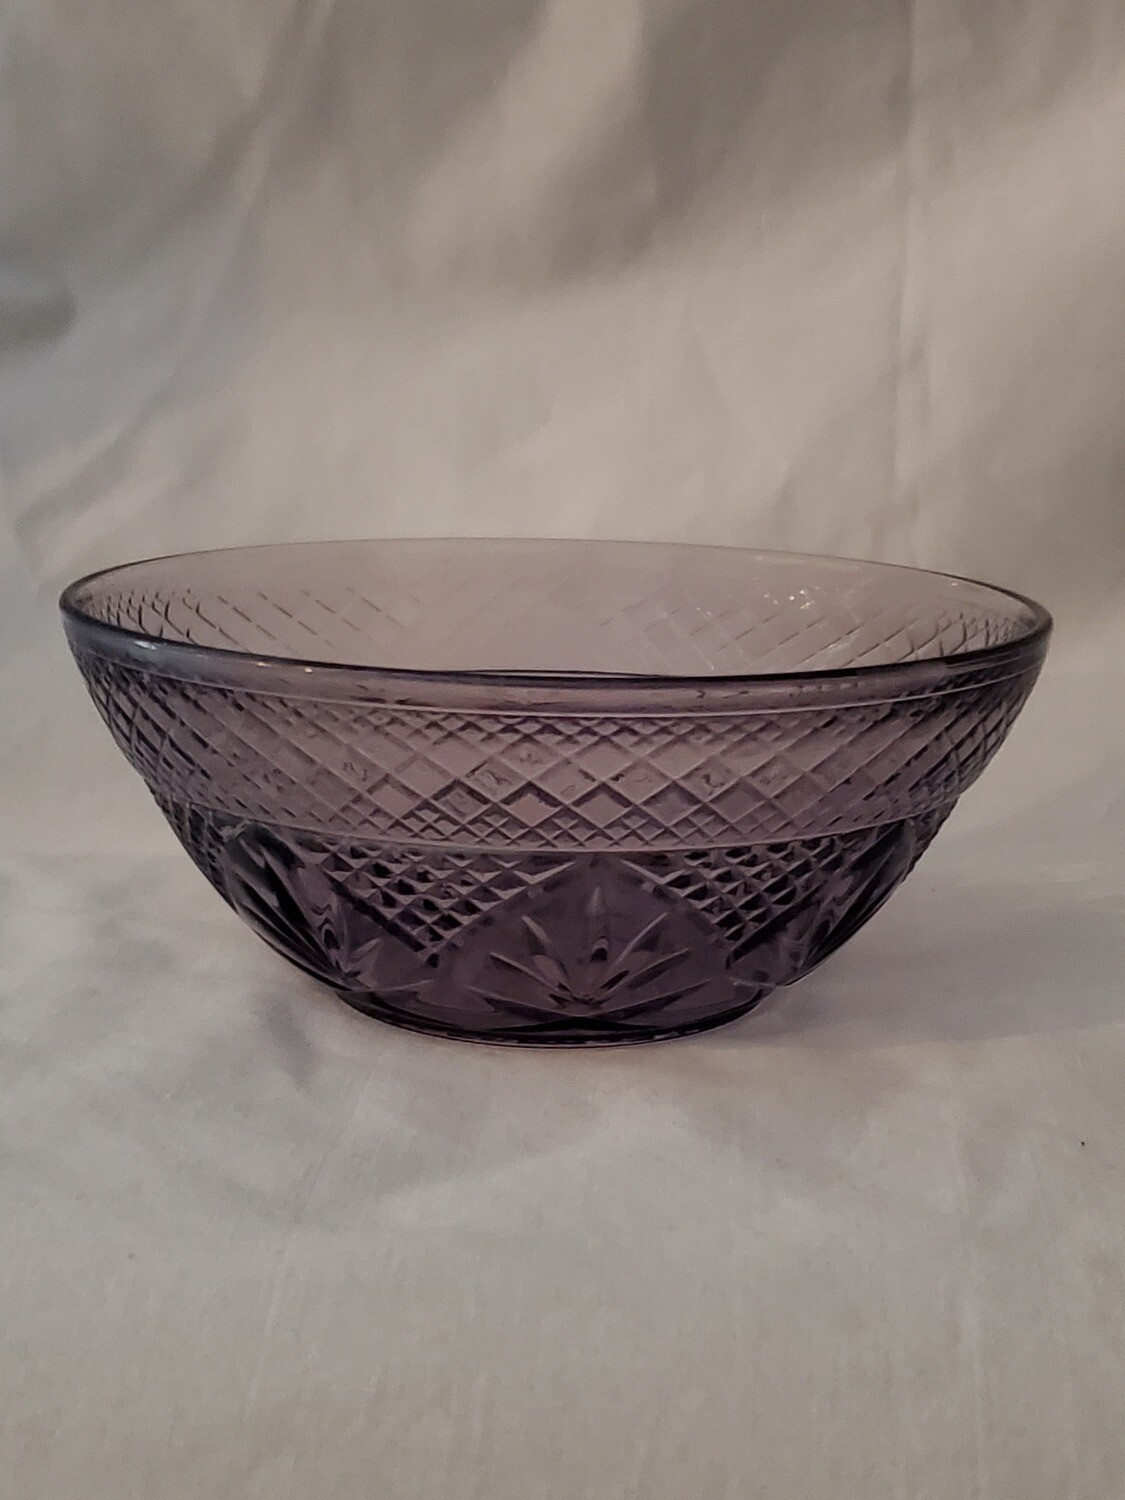 "Antique Amethyst Salad Bowl, 5 5/8"" by Cristal D'Arques-Durand"